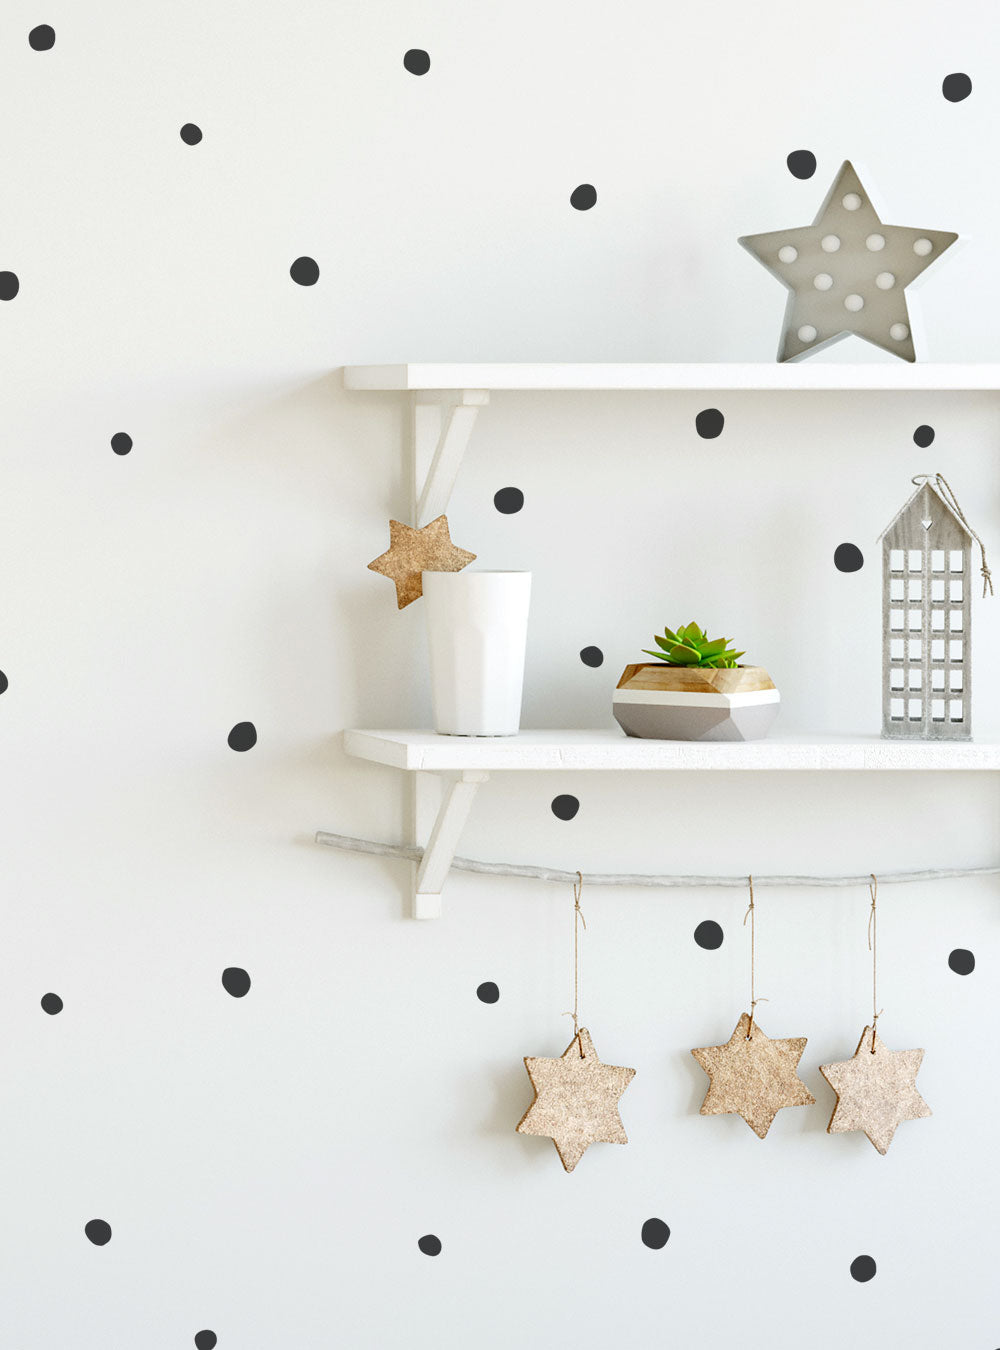 Irregular Dots Wall Decals (0.75 - 1 inch dots)